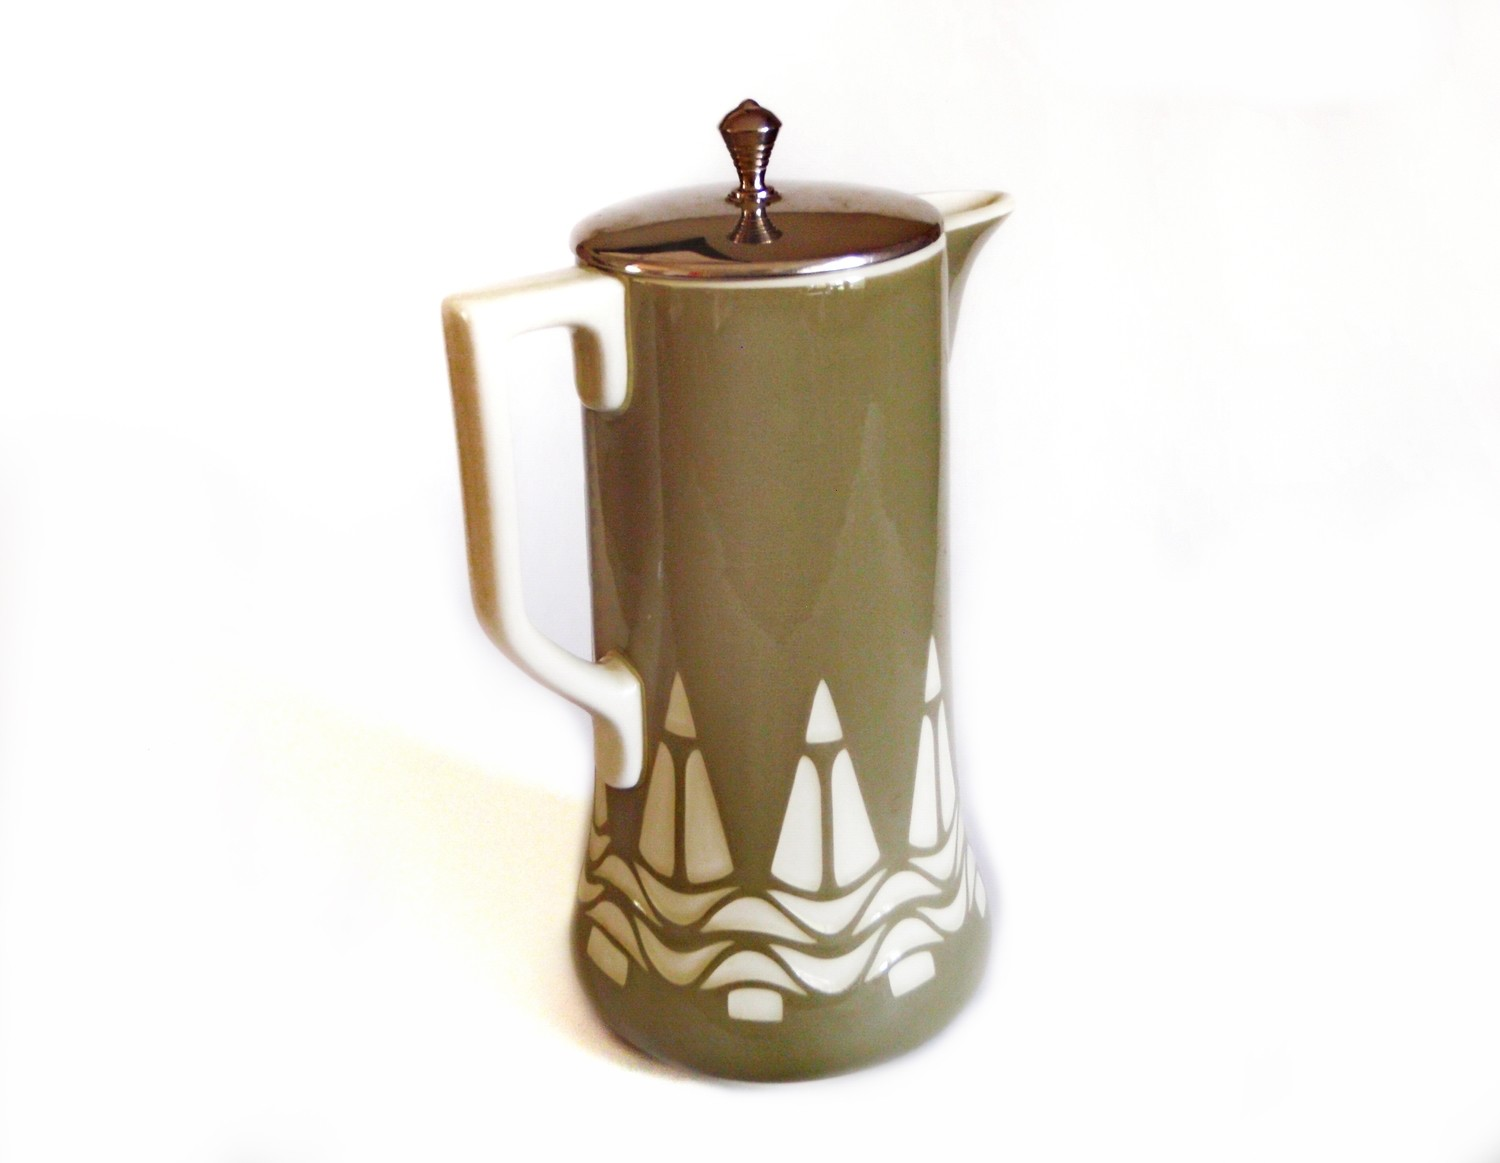 Antique Villeroy and Boch Chocolate Pot Jugendstil Stoneware Jug with Lid - Sage Green